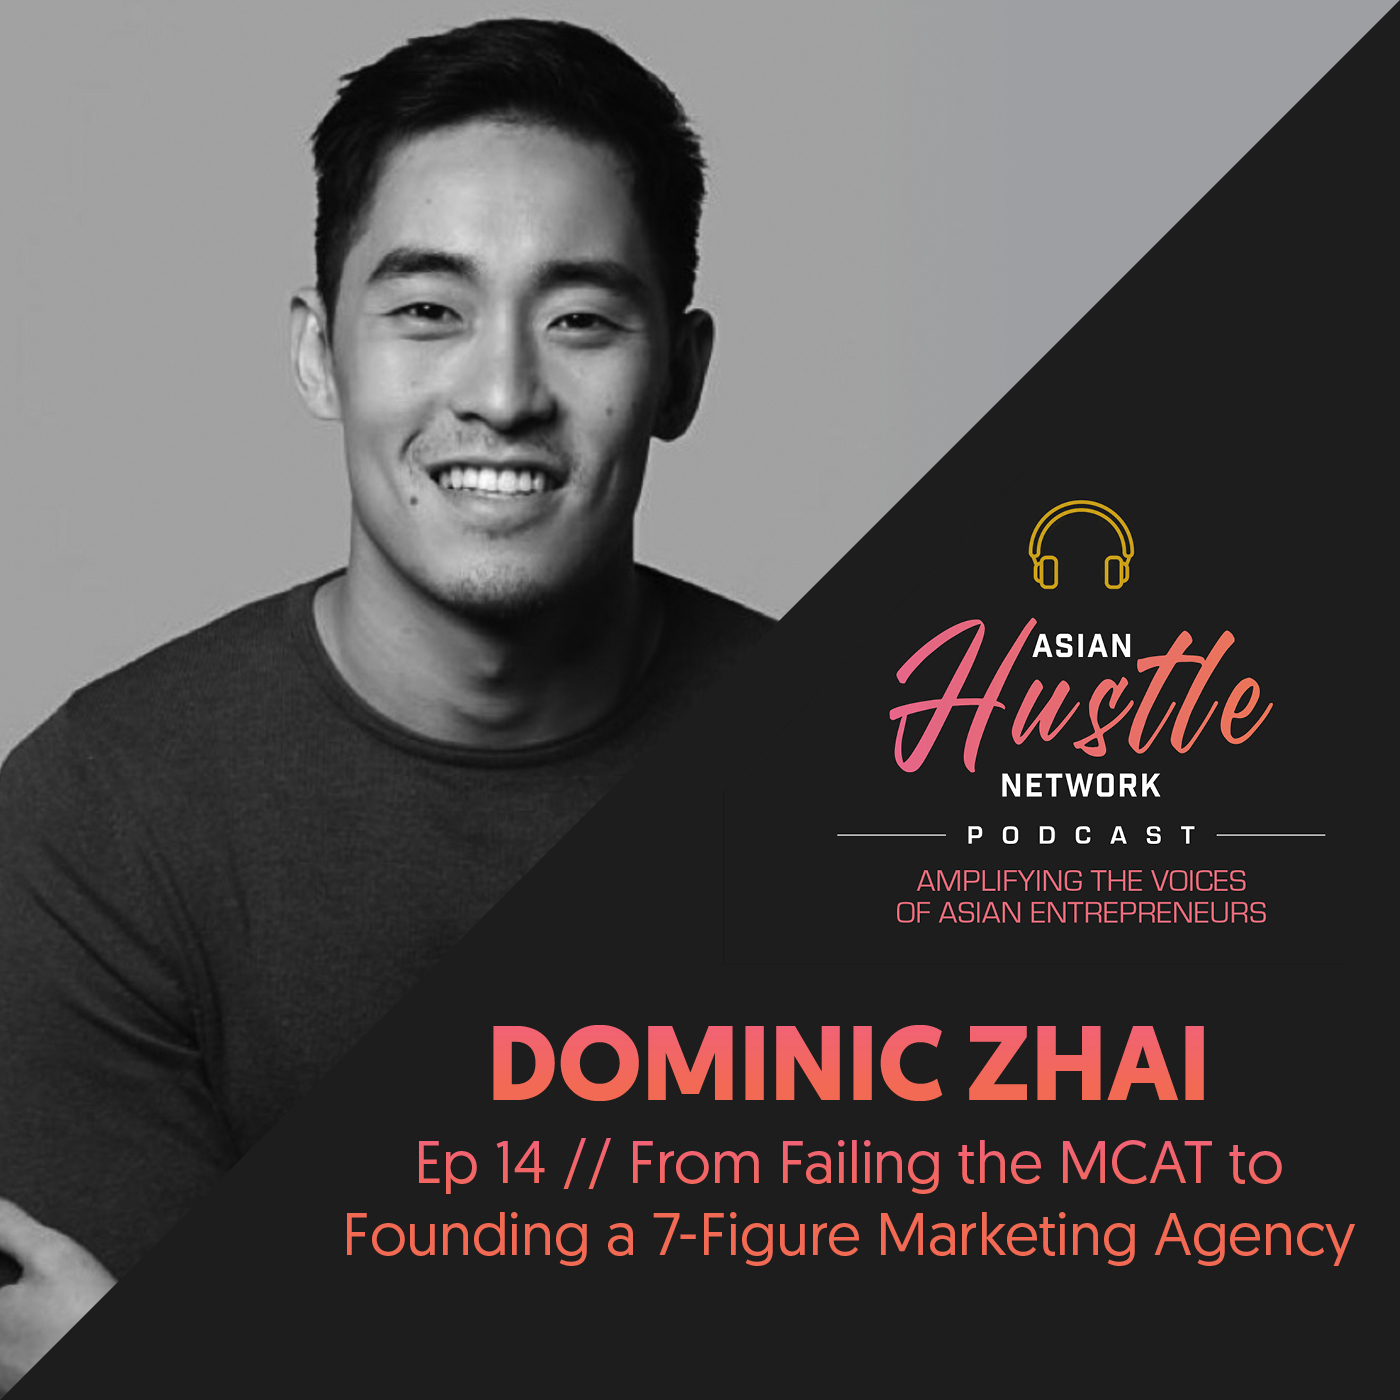 www.asianhustlenetwork.com: Dominic Zhai // Ep 14 // From Failing the MCAT to Founding a 7-Figure Marketing Agency